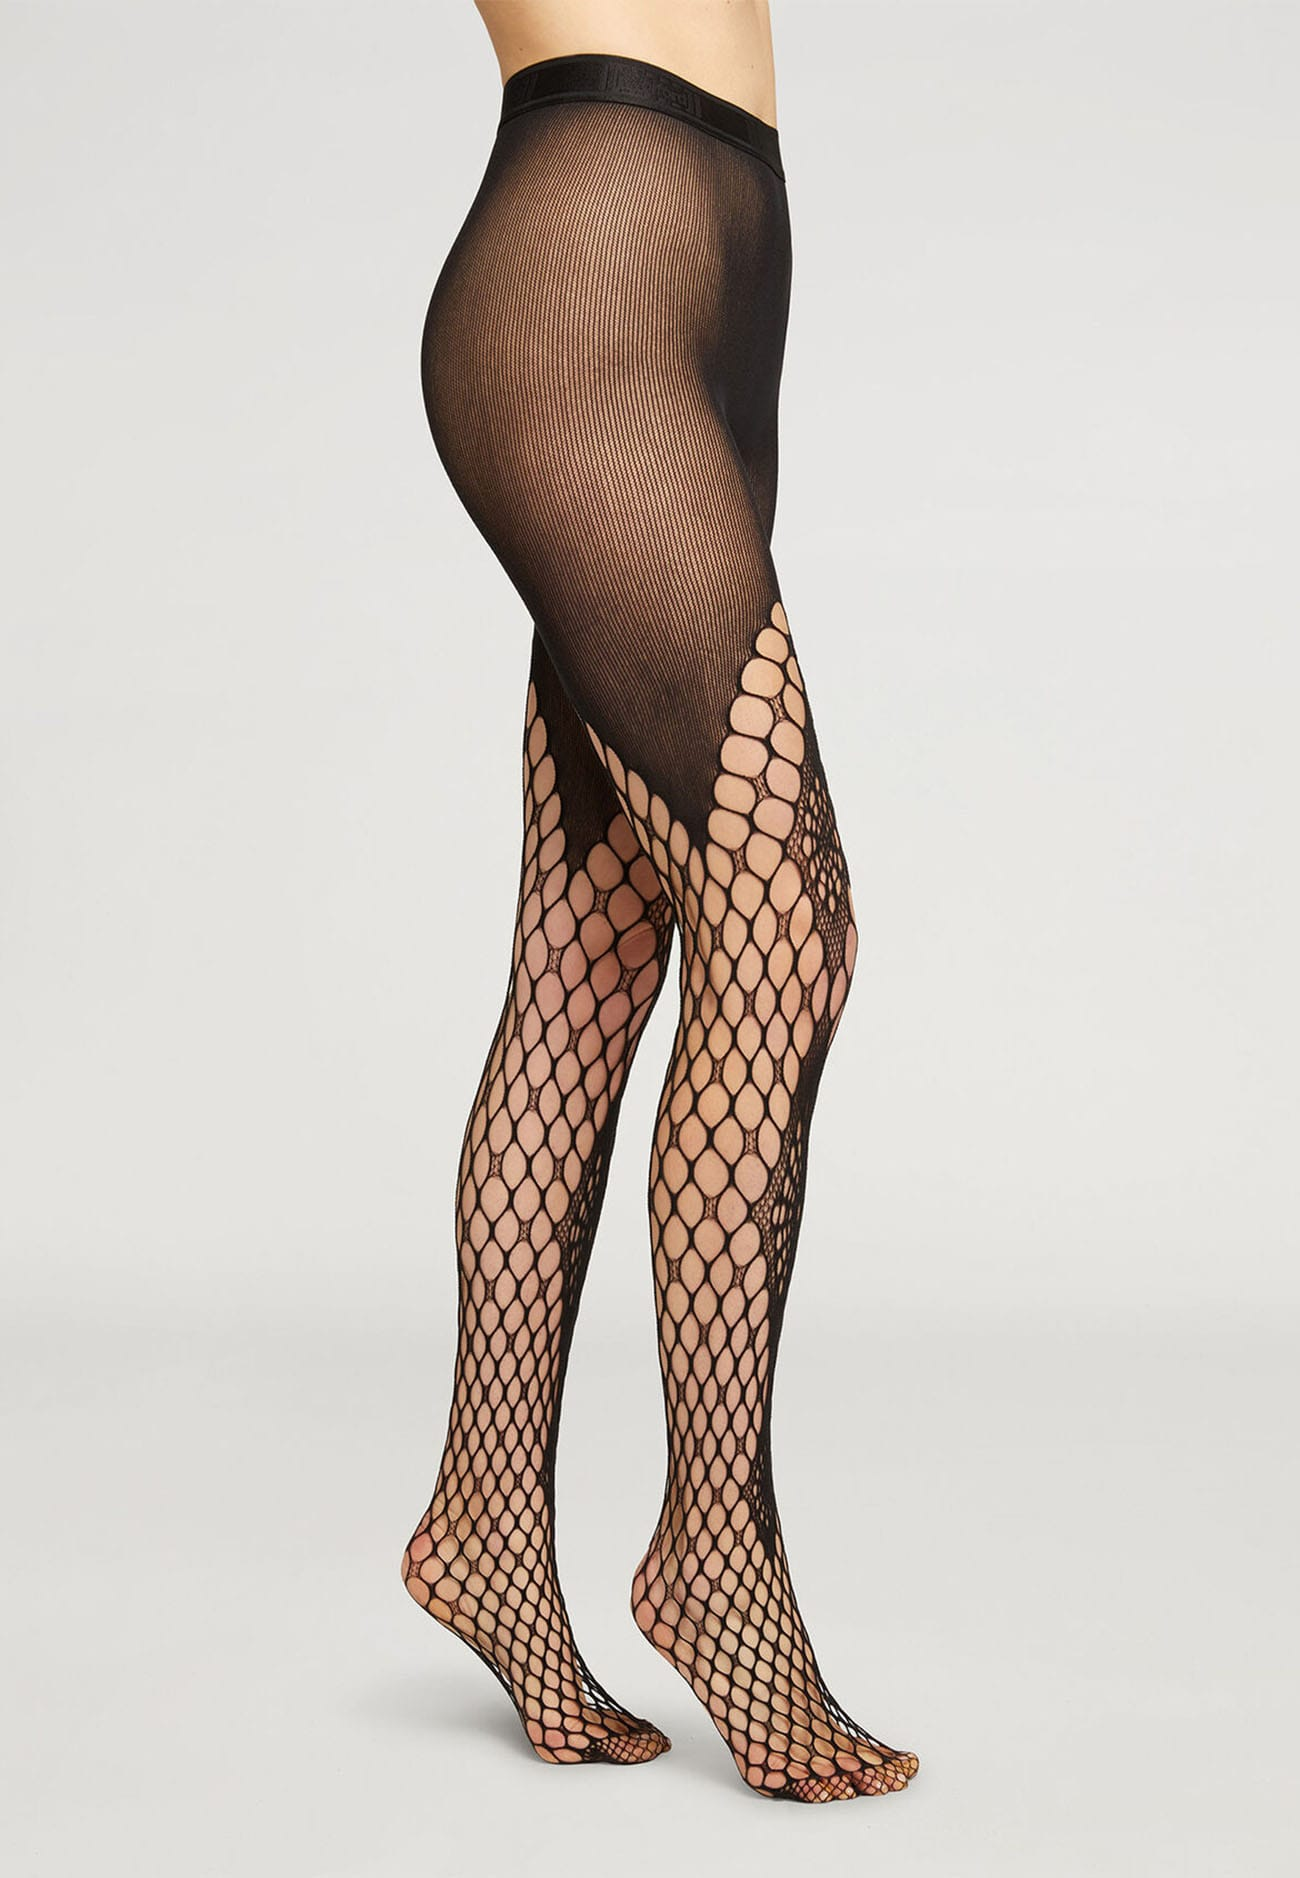 19321 Clairee Tights